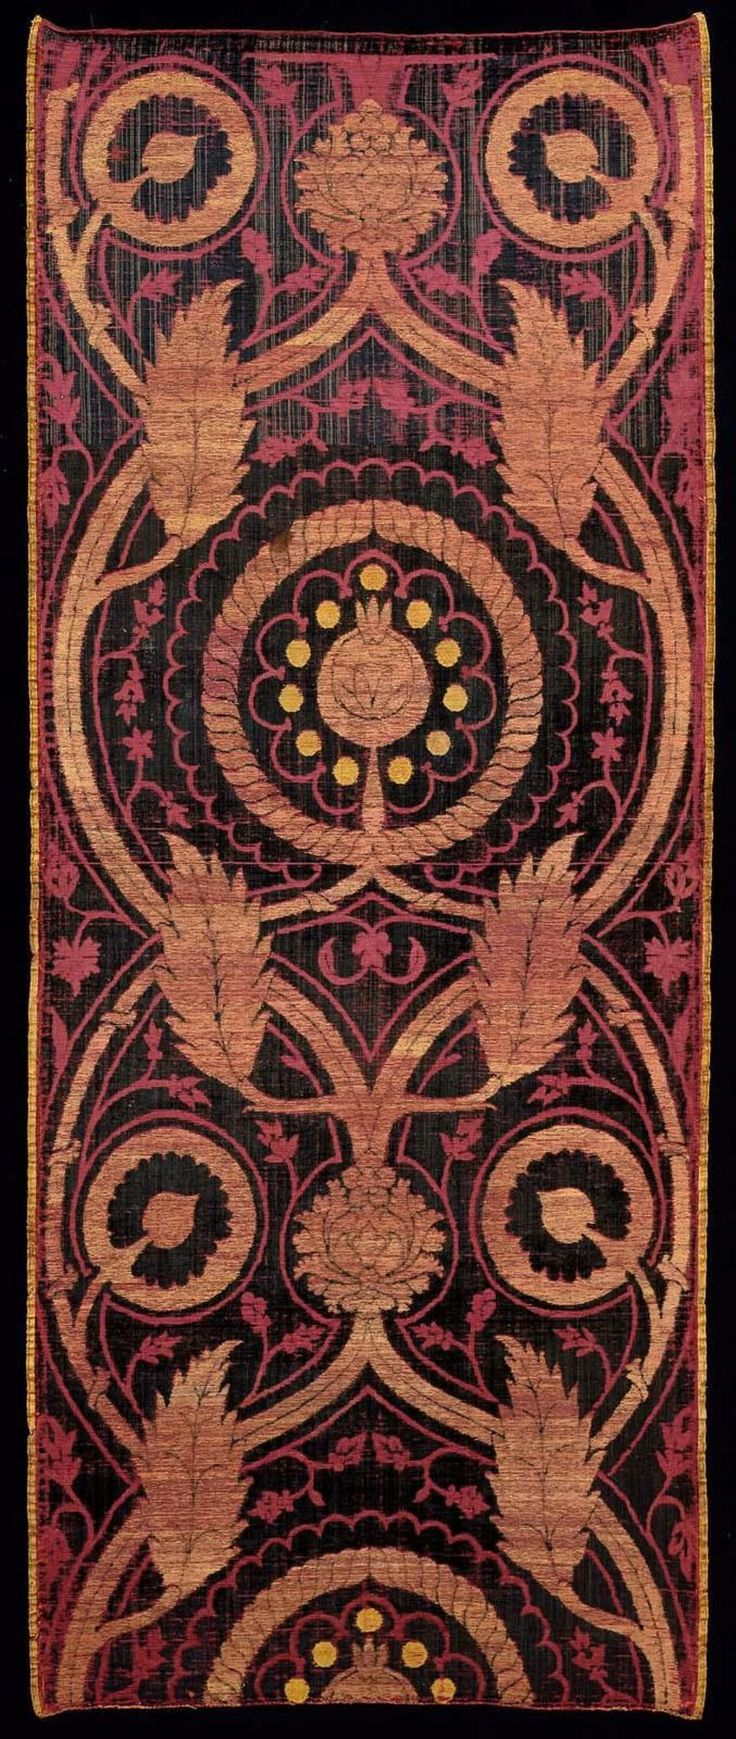 Length of velvet, Turkish, Ottoman, first half of the 16th century. Cut and voided silk velvet brocaded with gilt-metal wrapped thread | Museum of Fine Arts, Boston